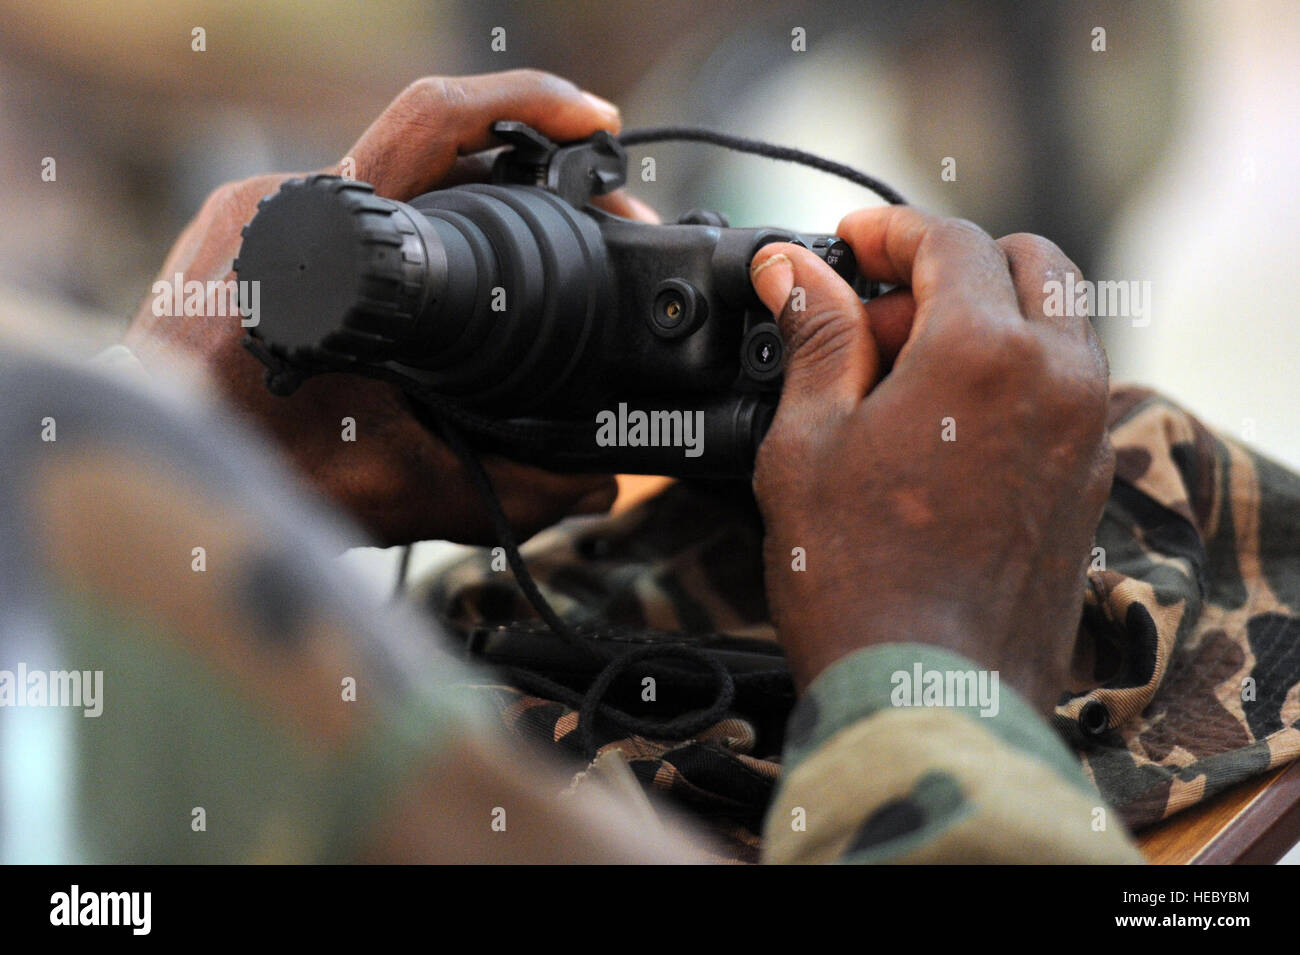 A Djiboutian army soldier turns on a set of PVS-7 Night Vision Goggles during a NVG class in Arta, Djibouti, on Stock Photo